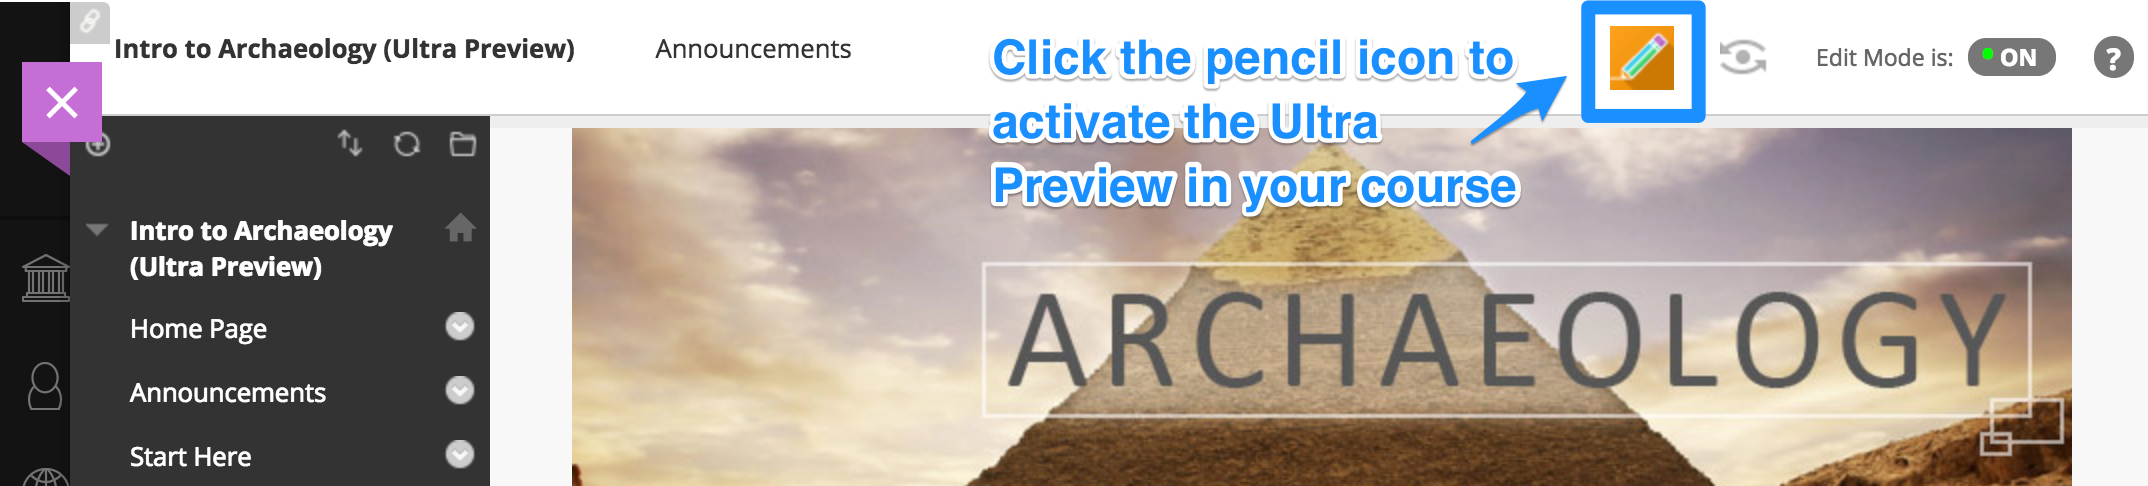 Click pencil icon to activate Ultra Preview